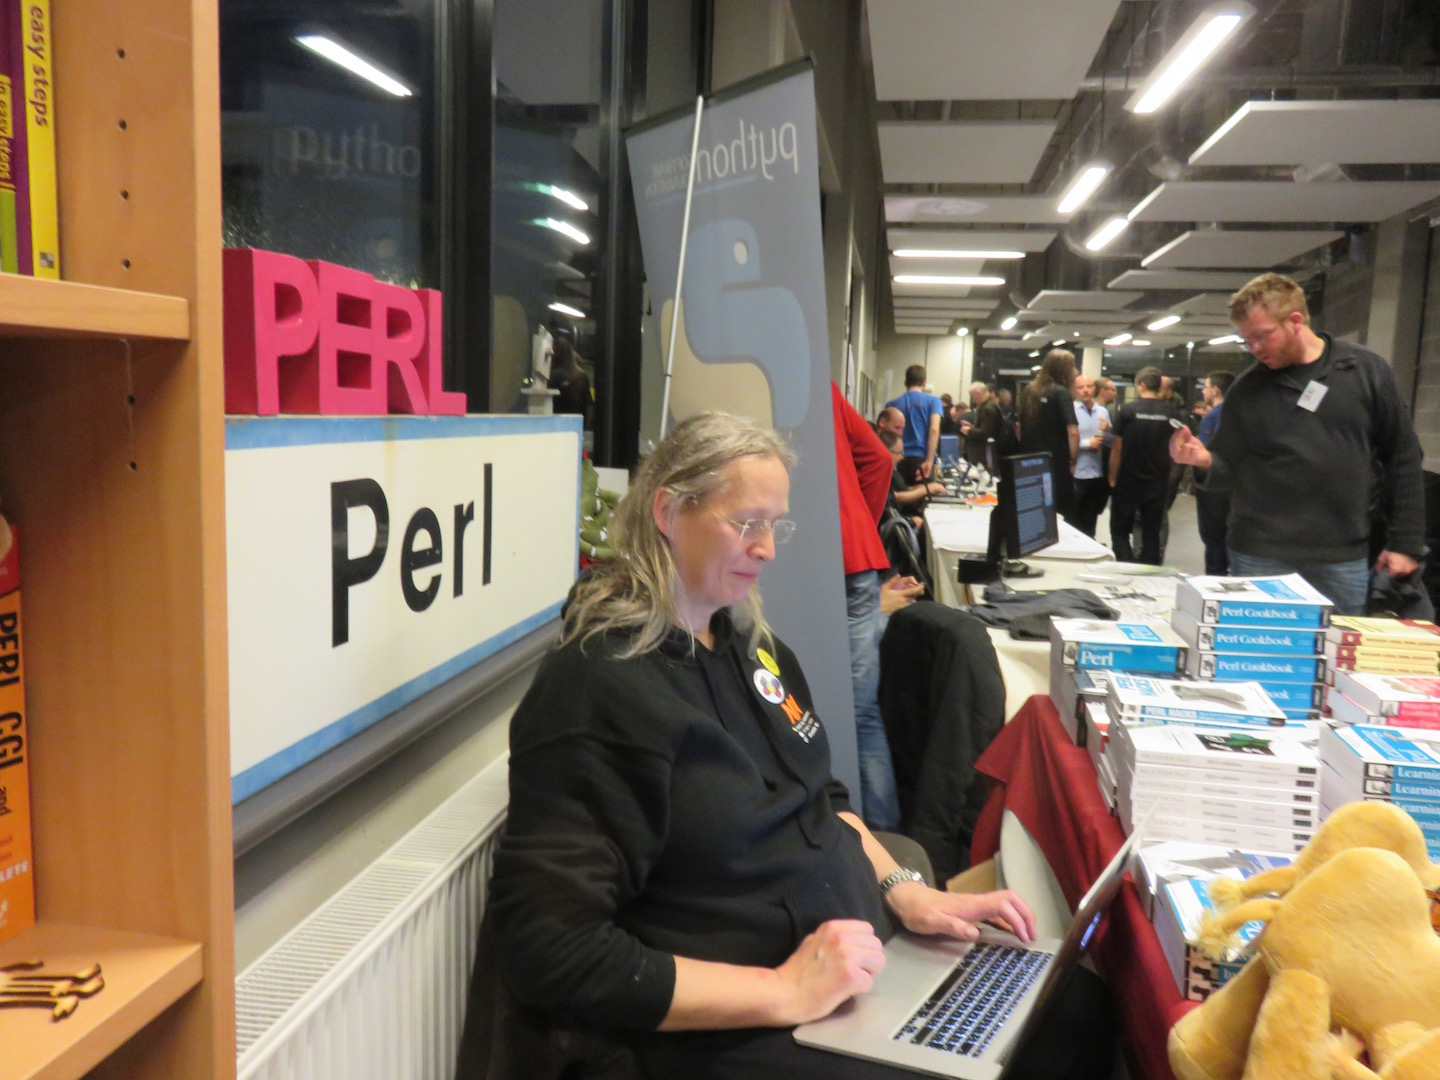 wendy manning a stall